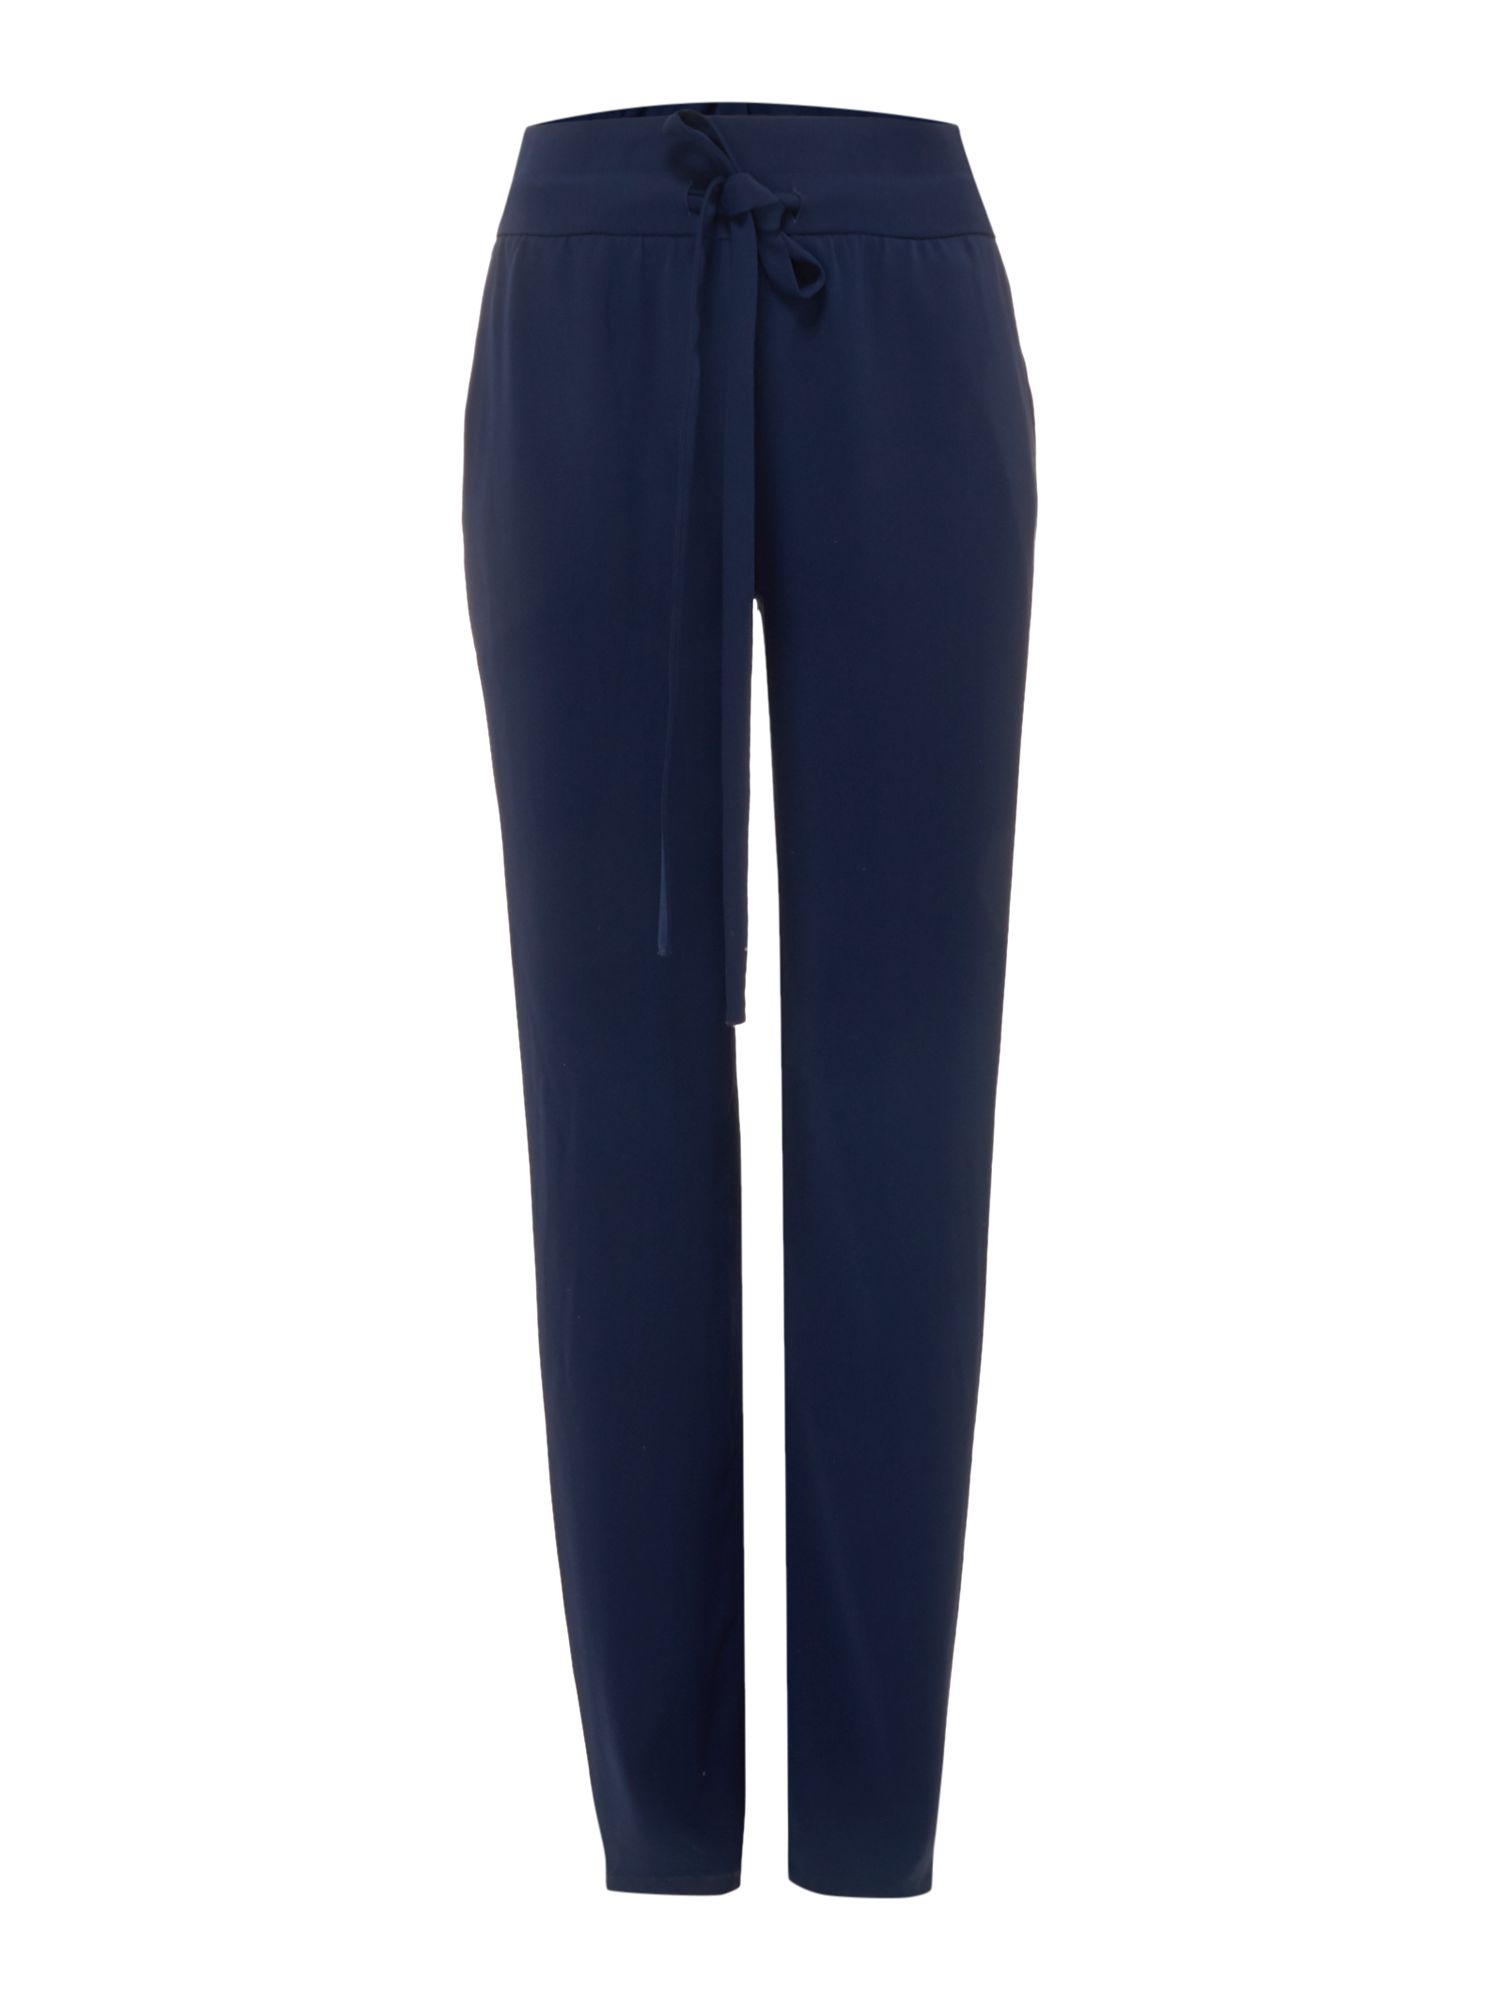 Michael Kors Self tie waist relax fit trouser, Blue